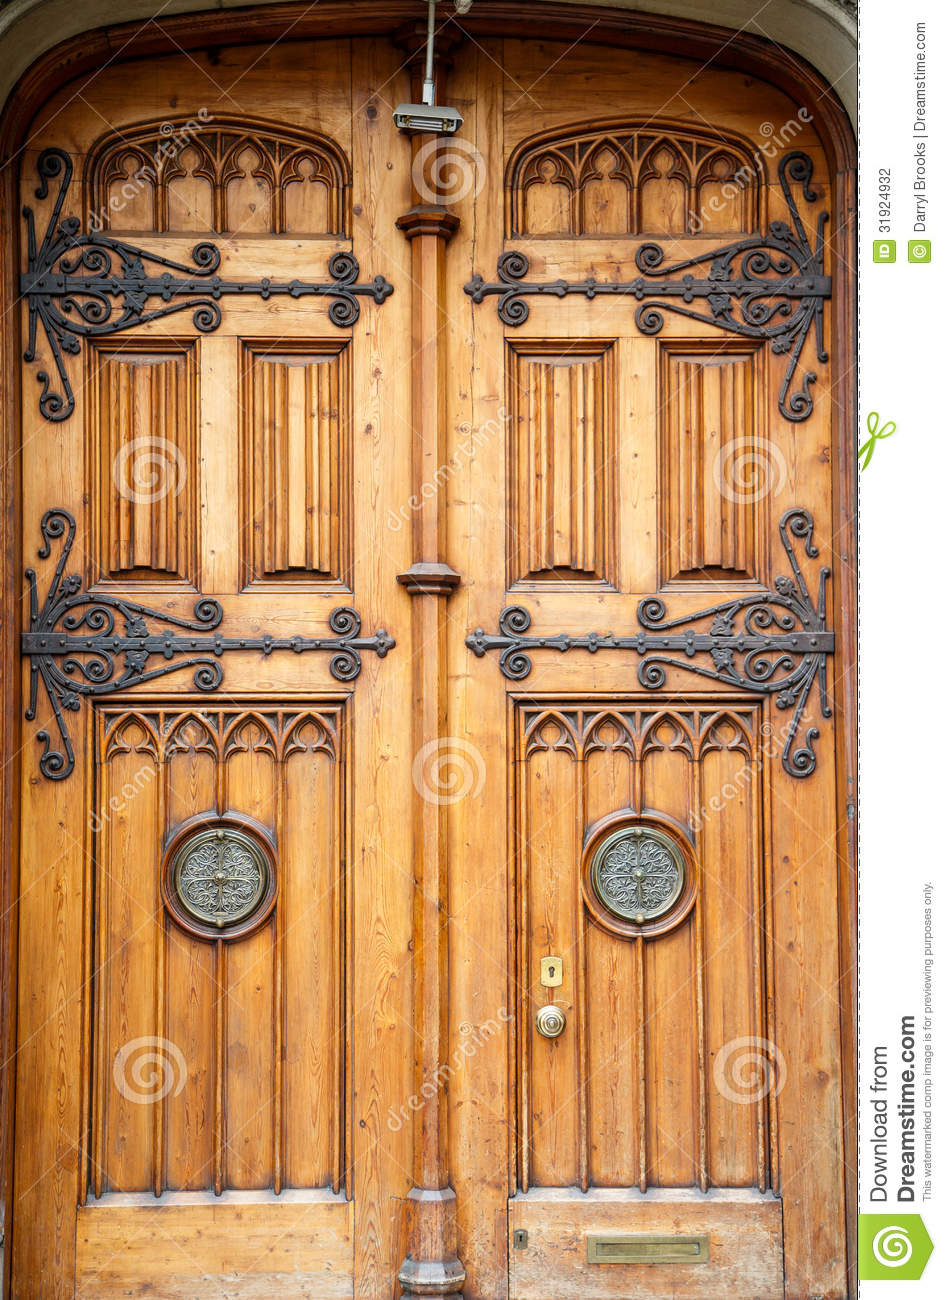 Swell Old Wooden Doors With Brass Fixtures Stock Photo Image Door Handles Collection Olytizonderlifede